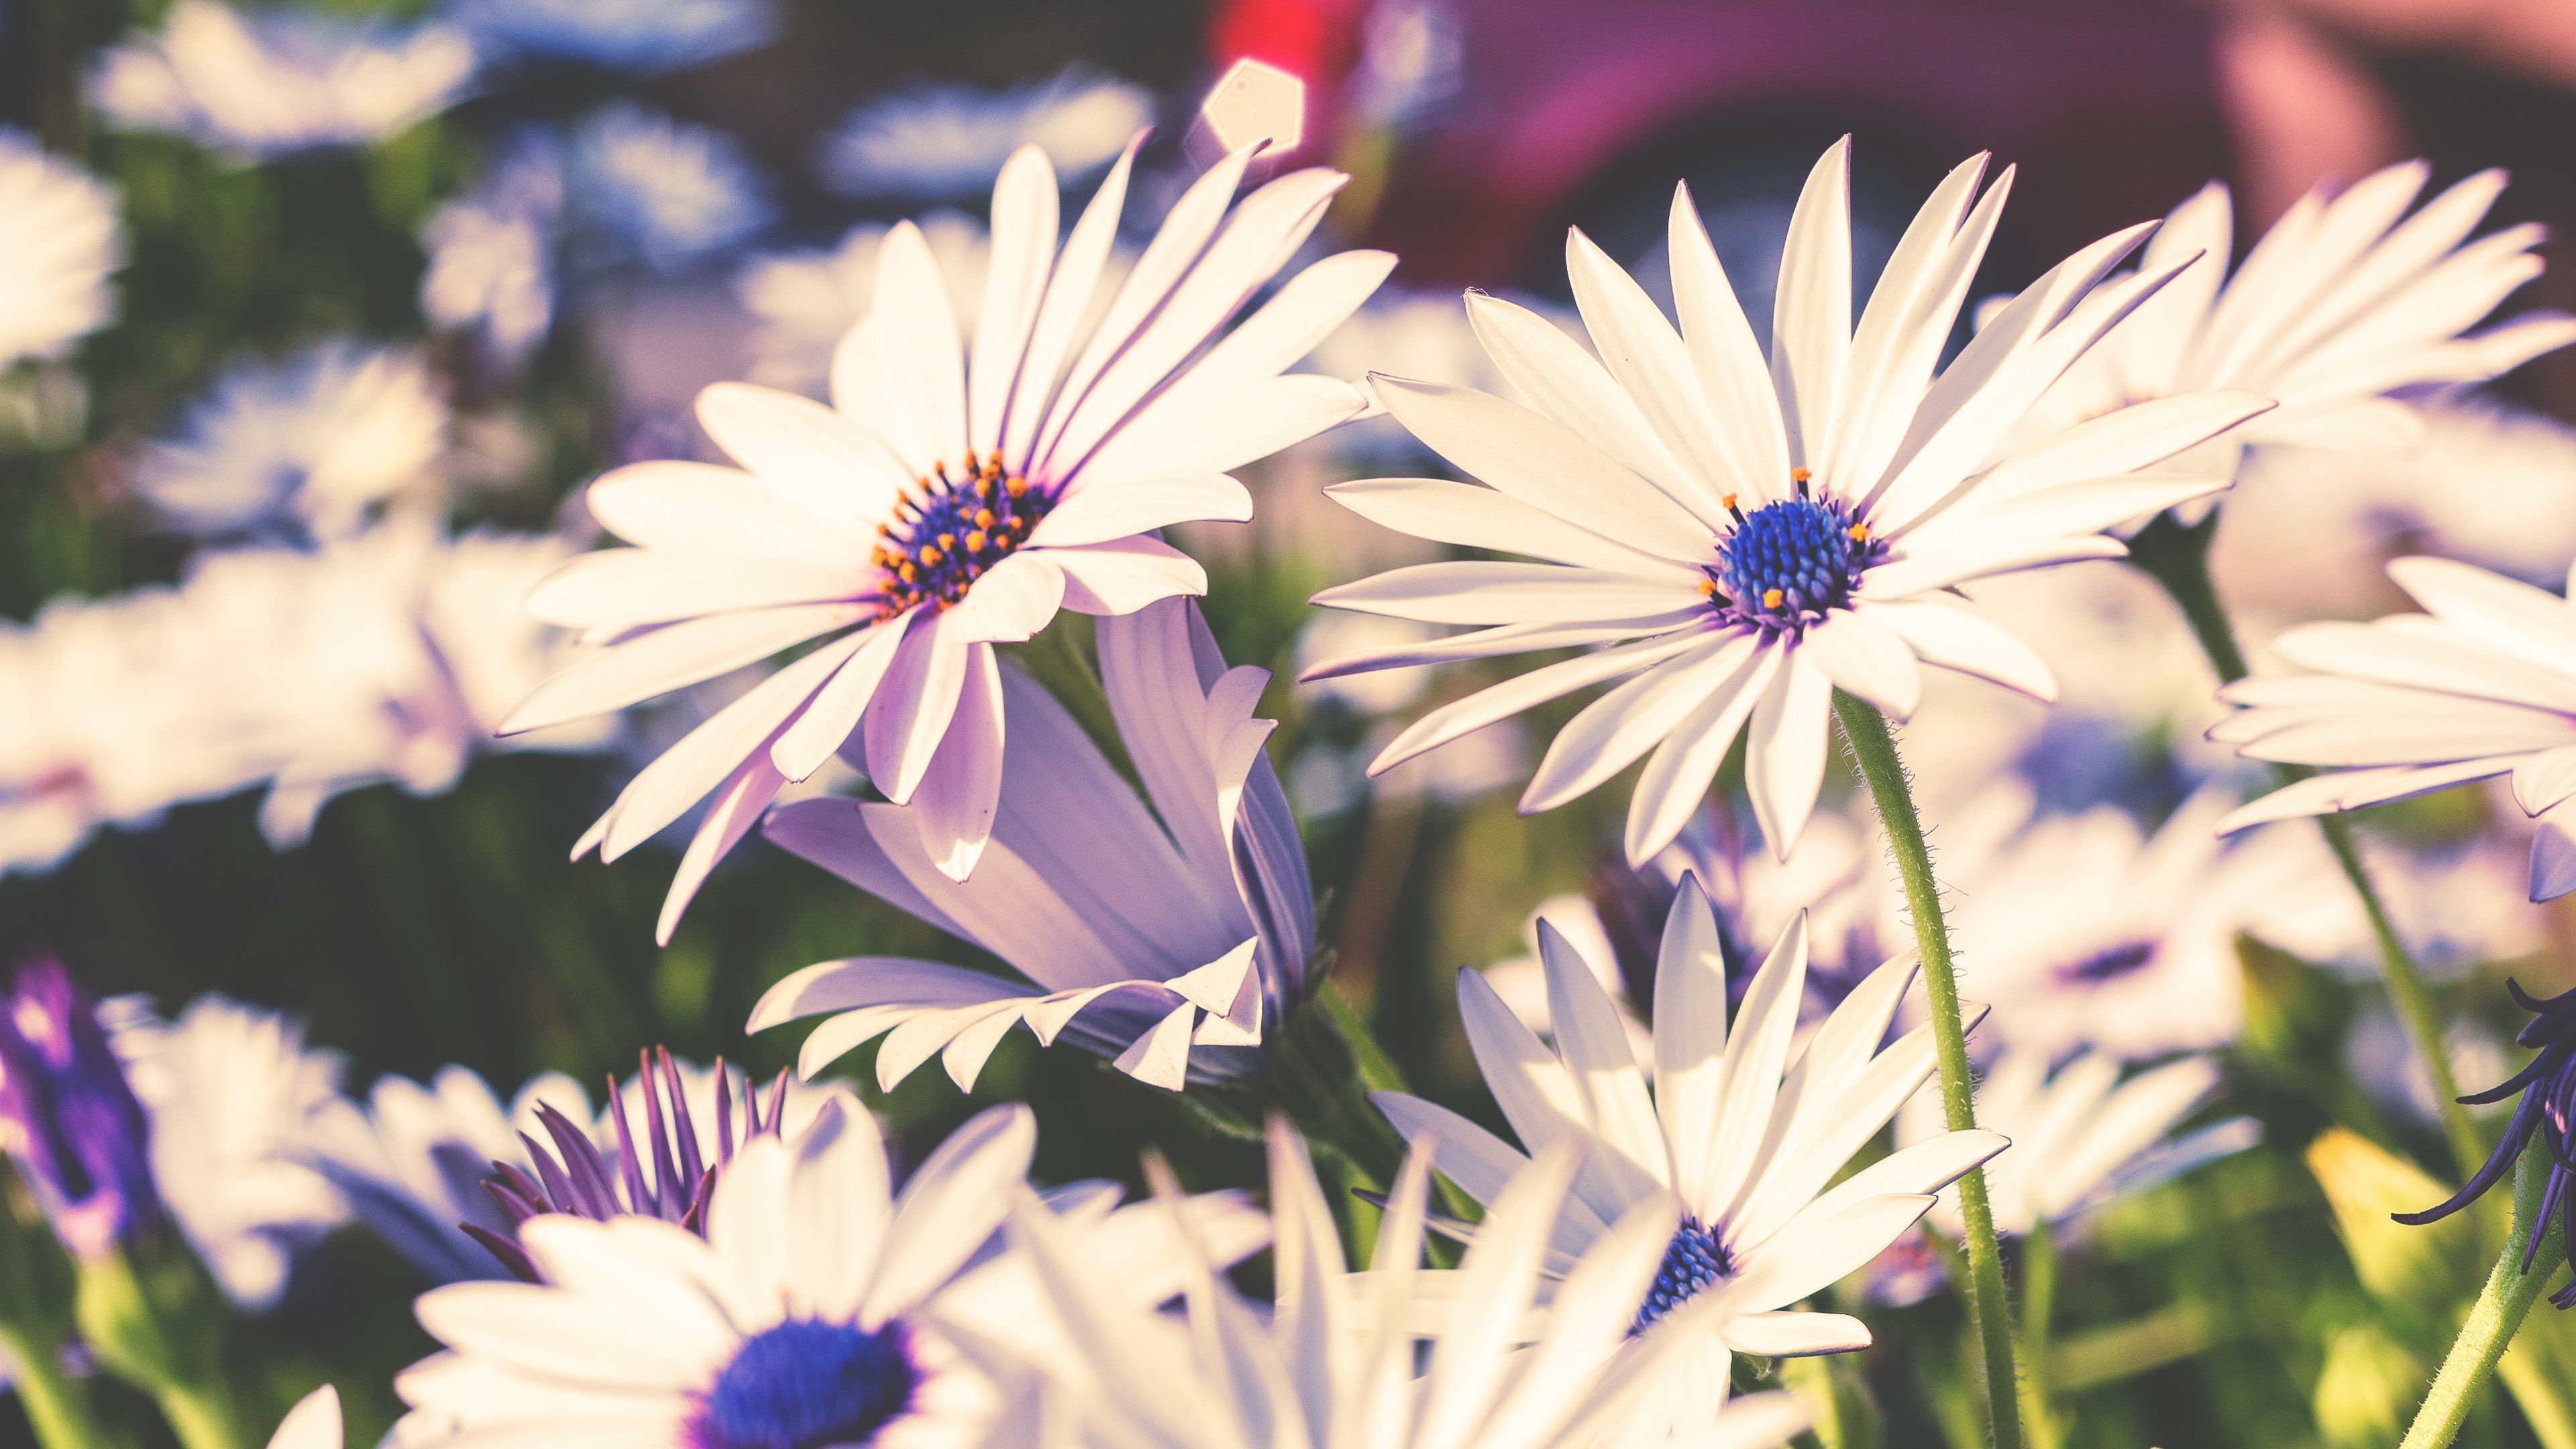 White and purple flowers, flowers, daisies, petals, nature, flower